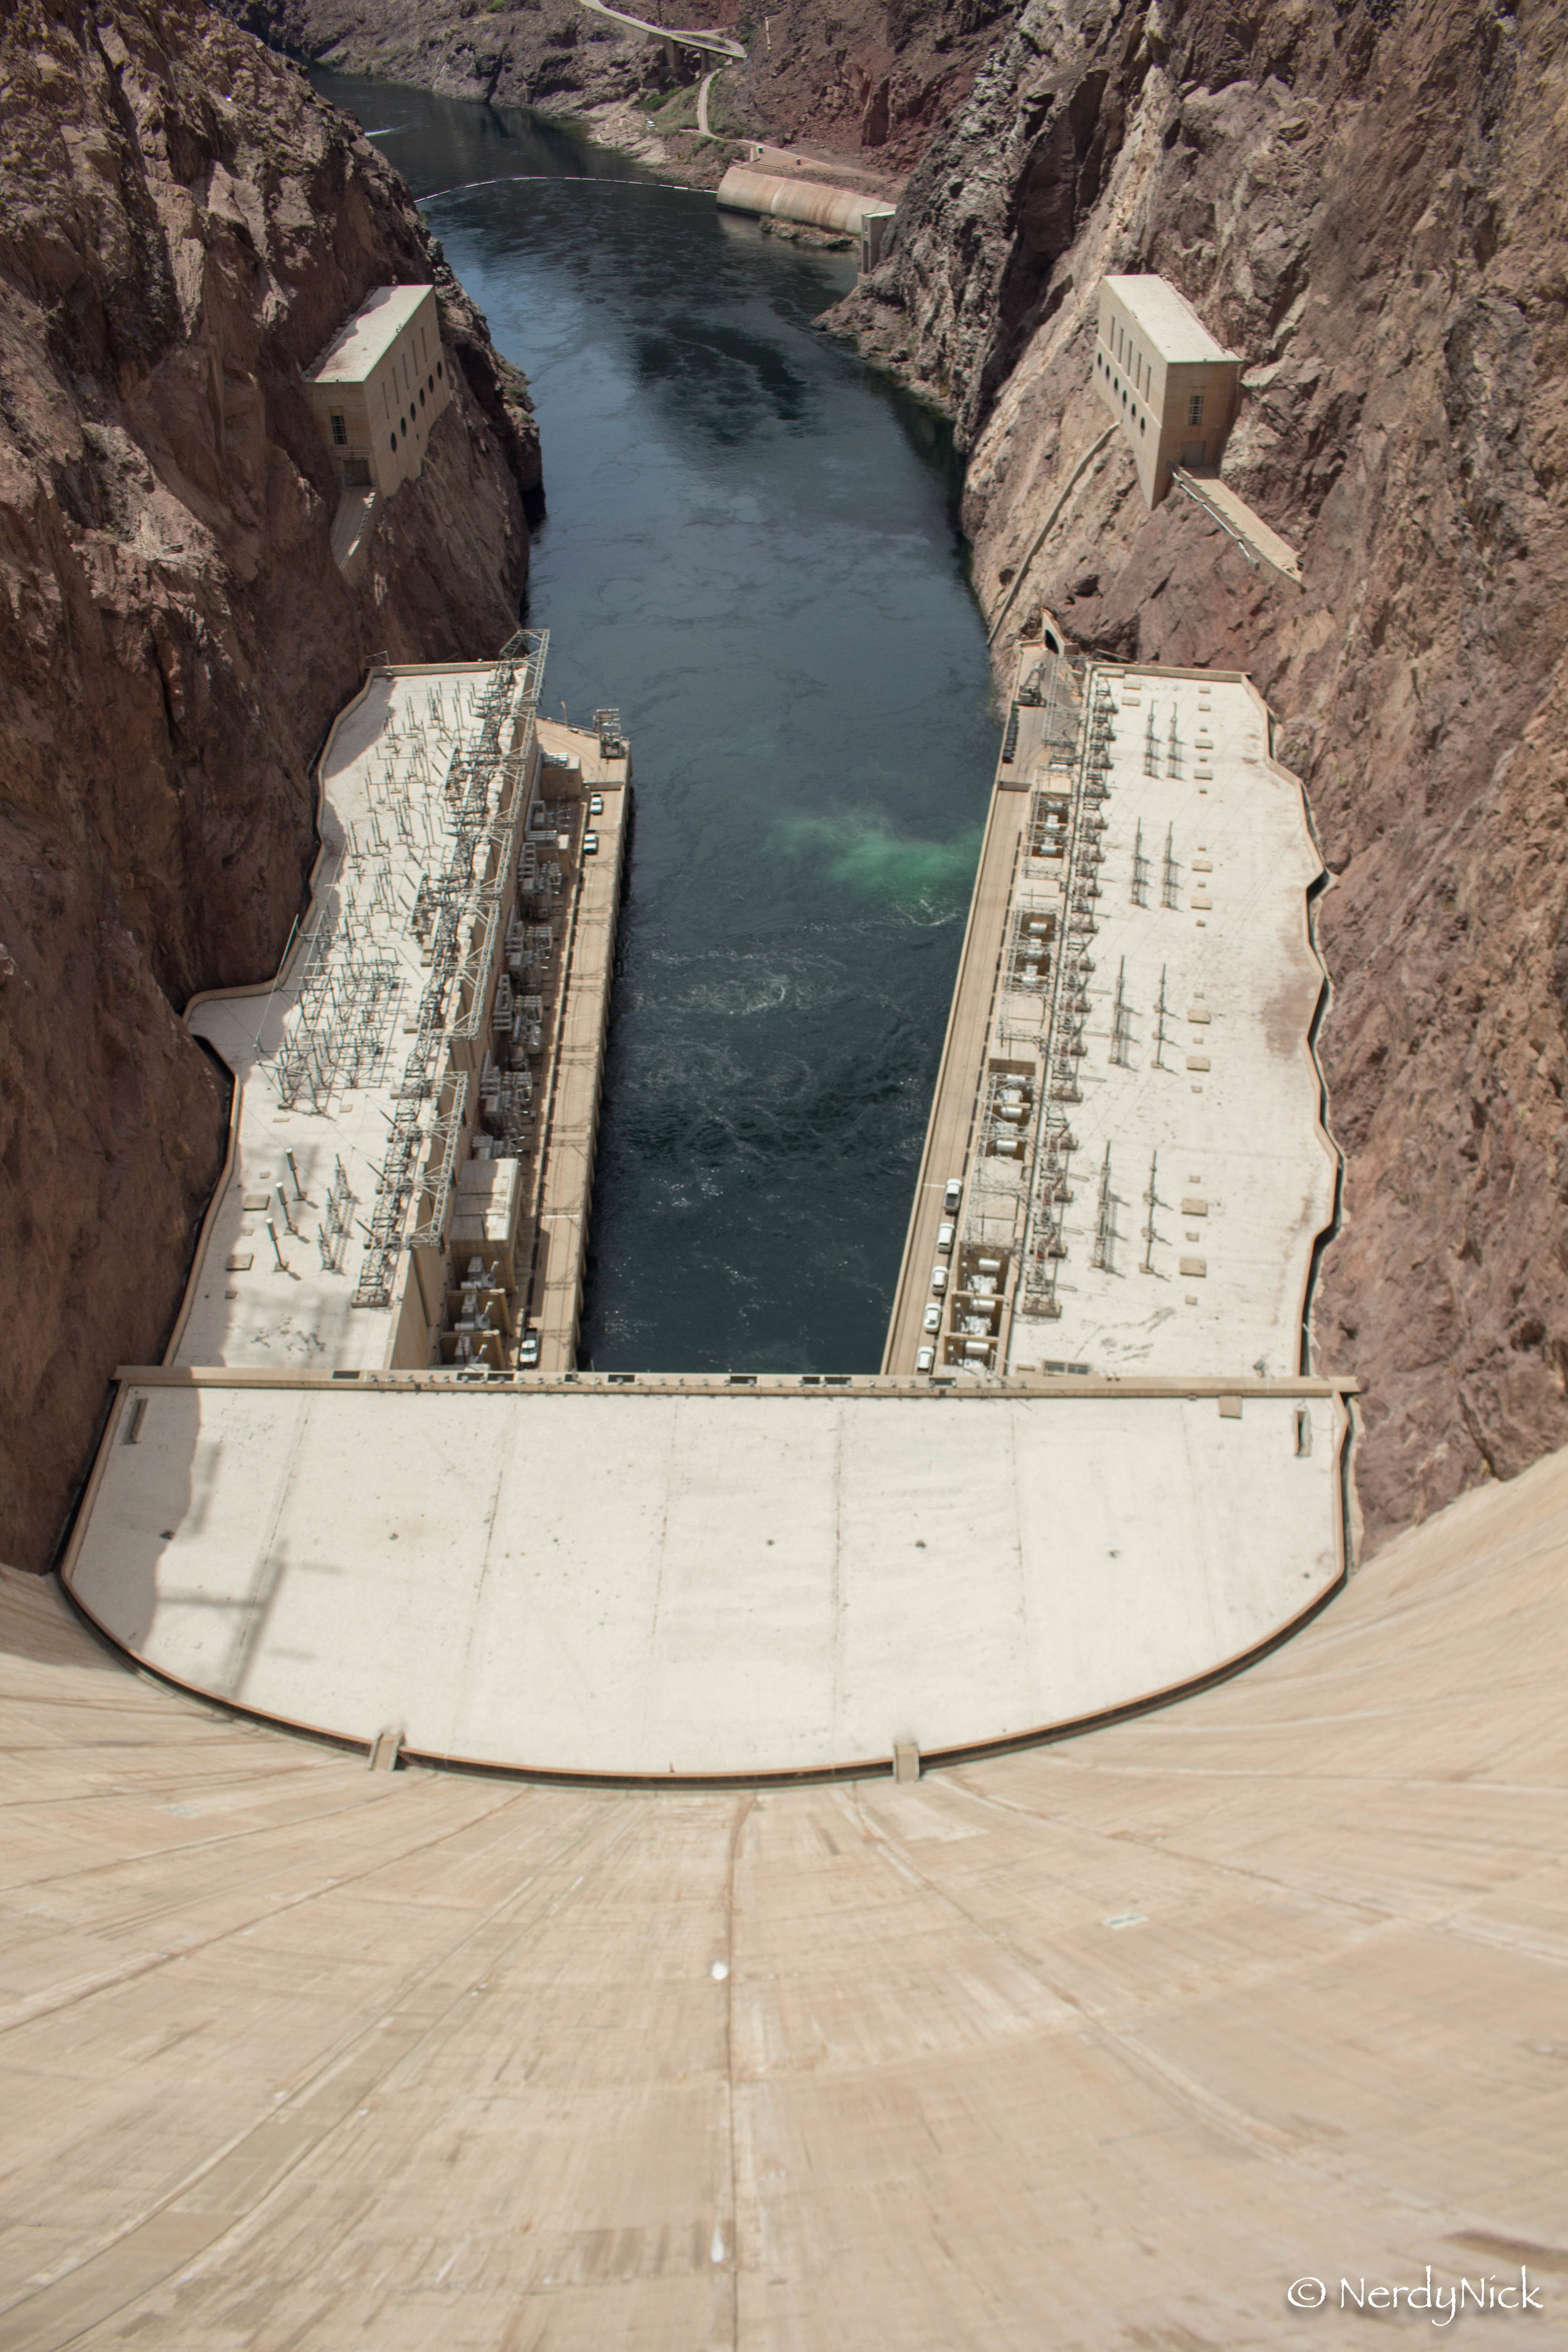 Looking down the side of the Hoover Dam